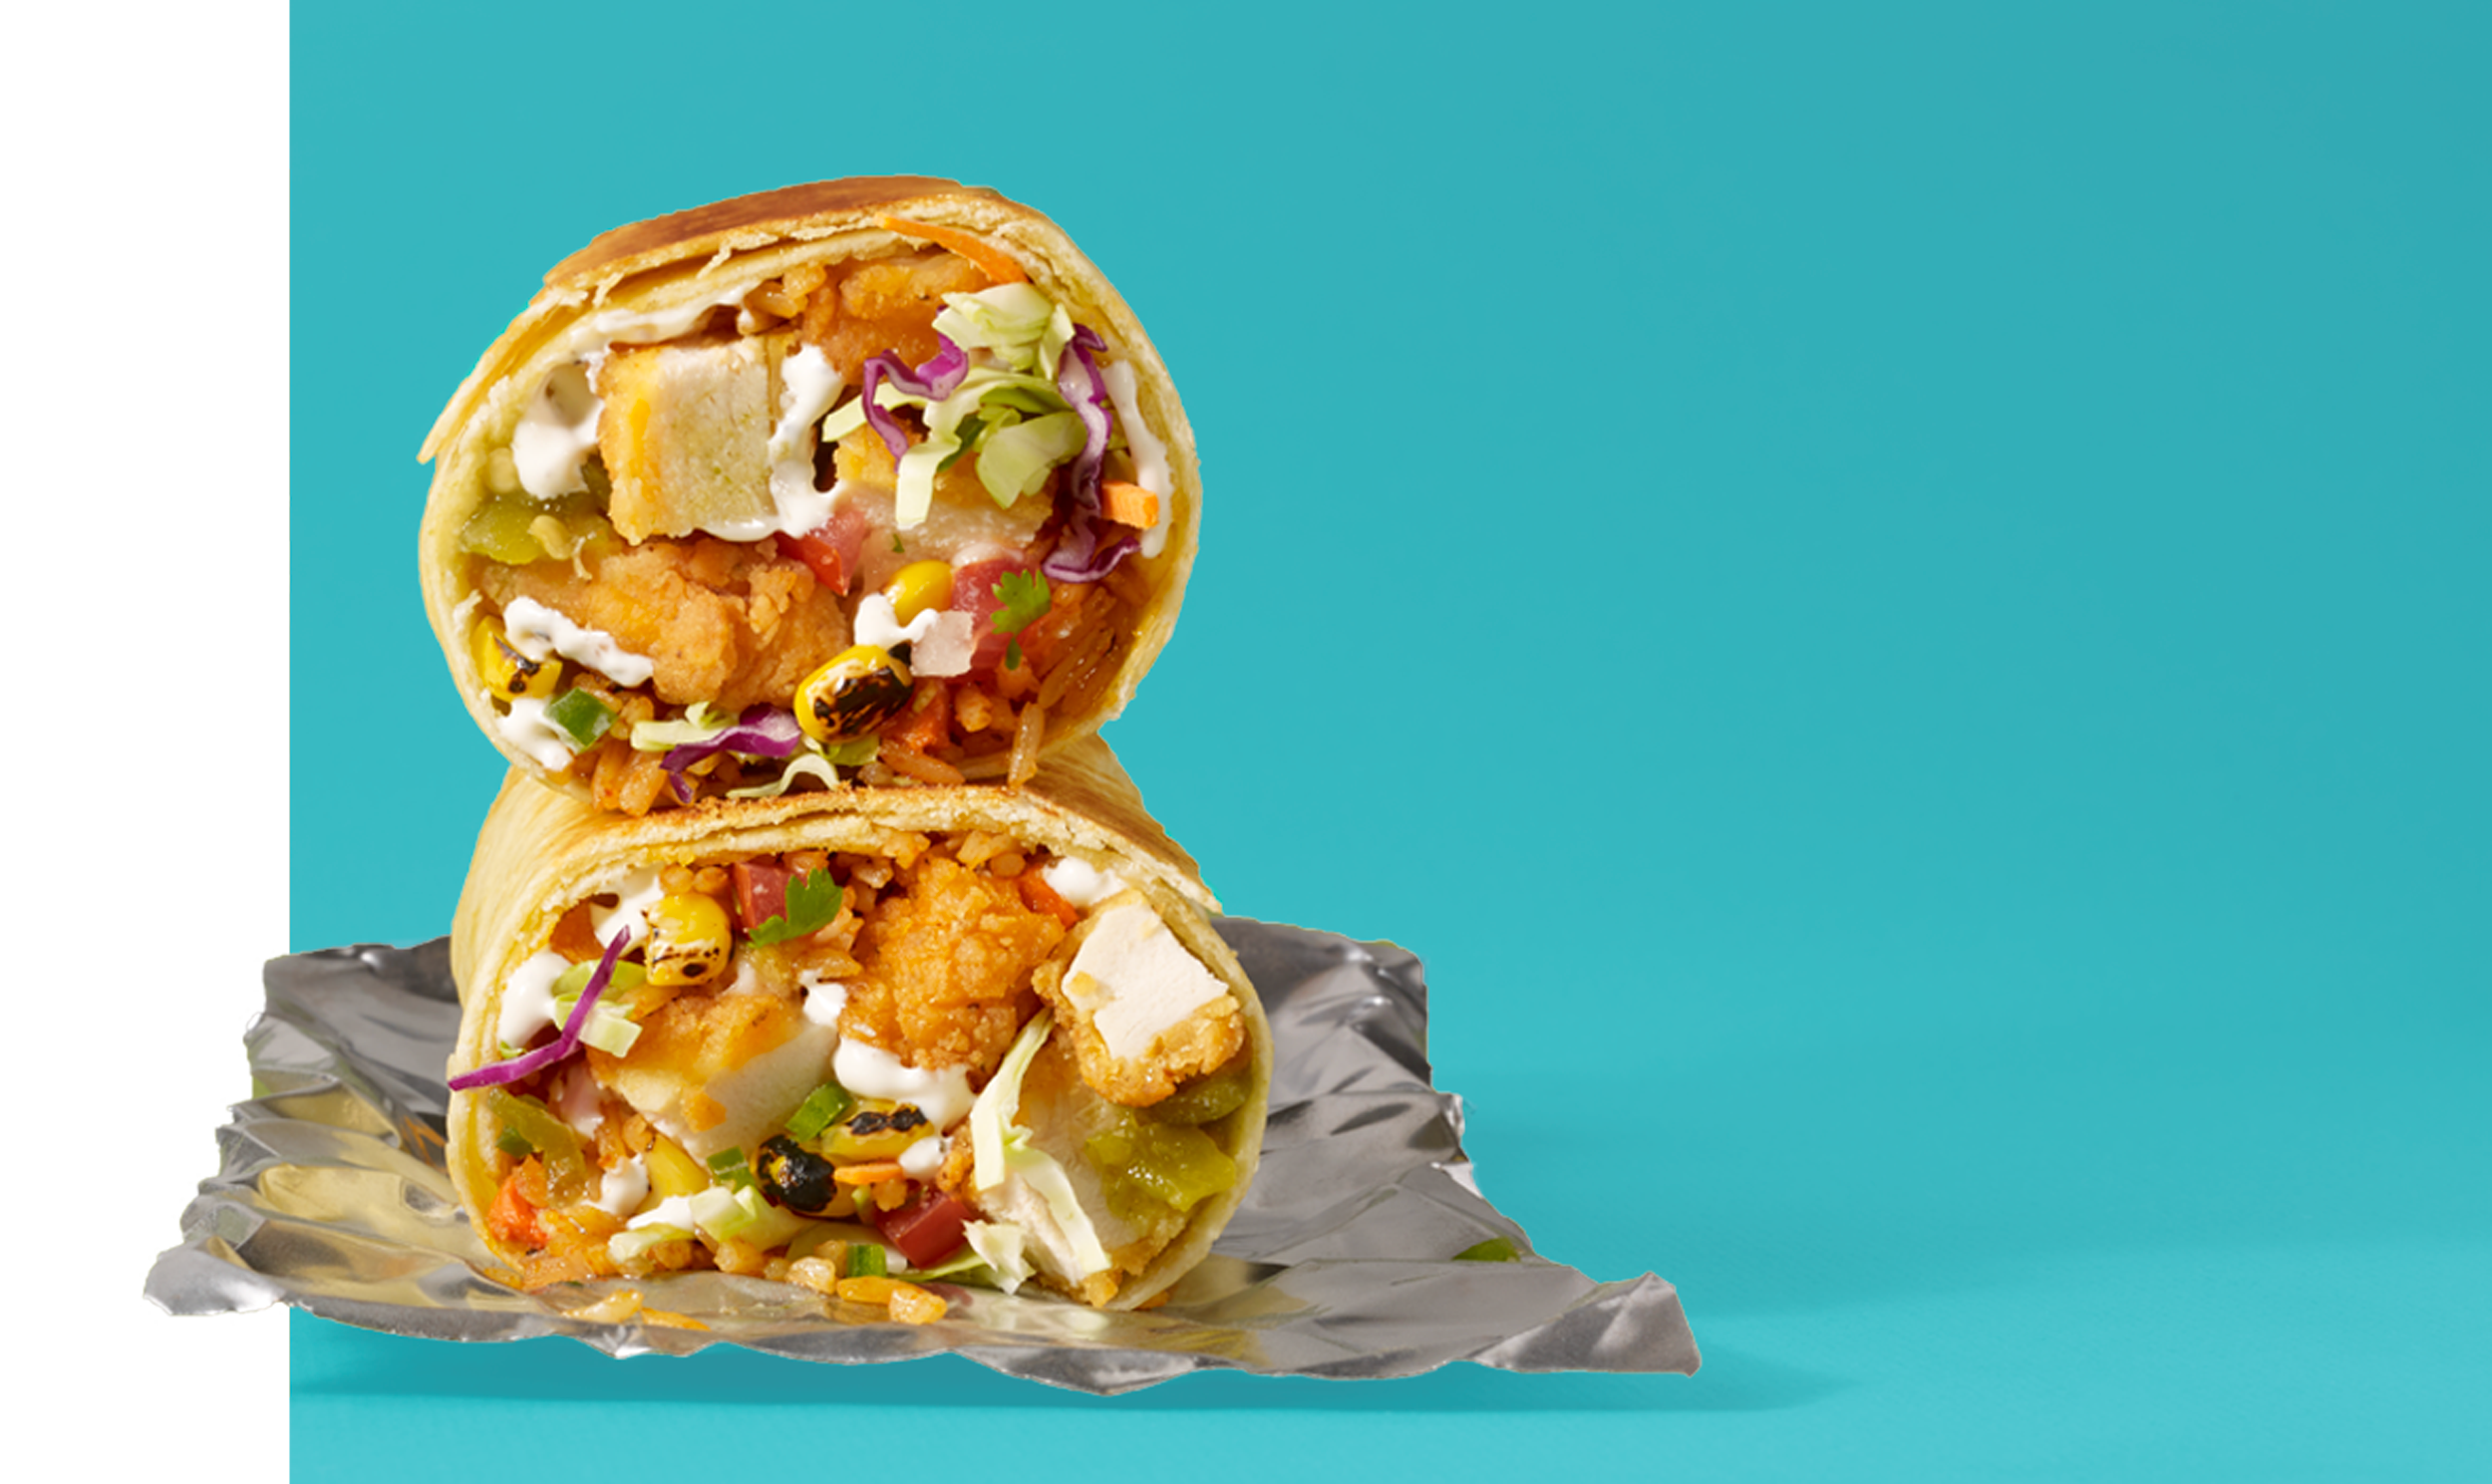 Fried Chicken Picnic Burrito